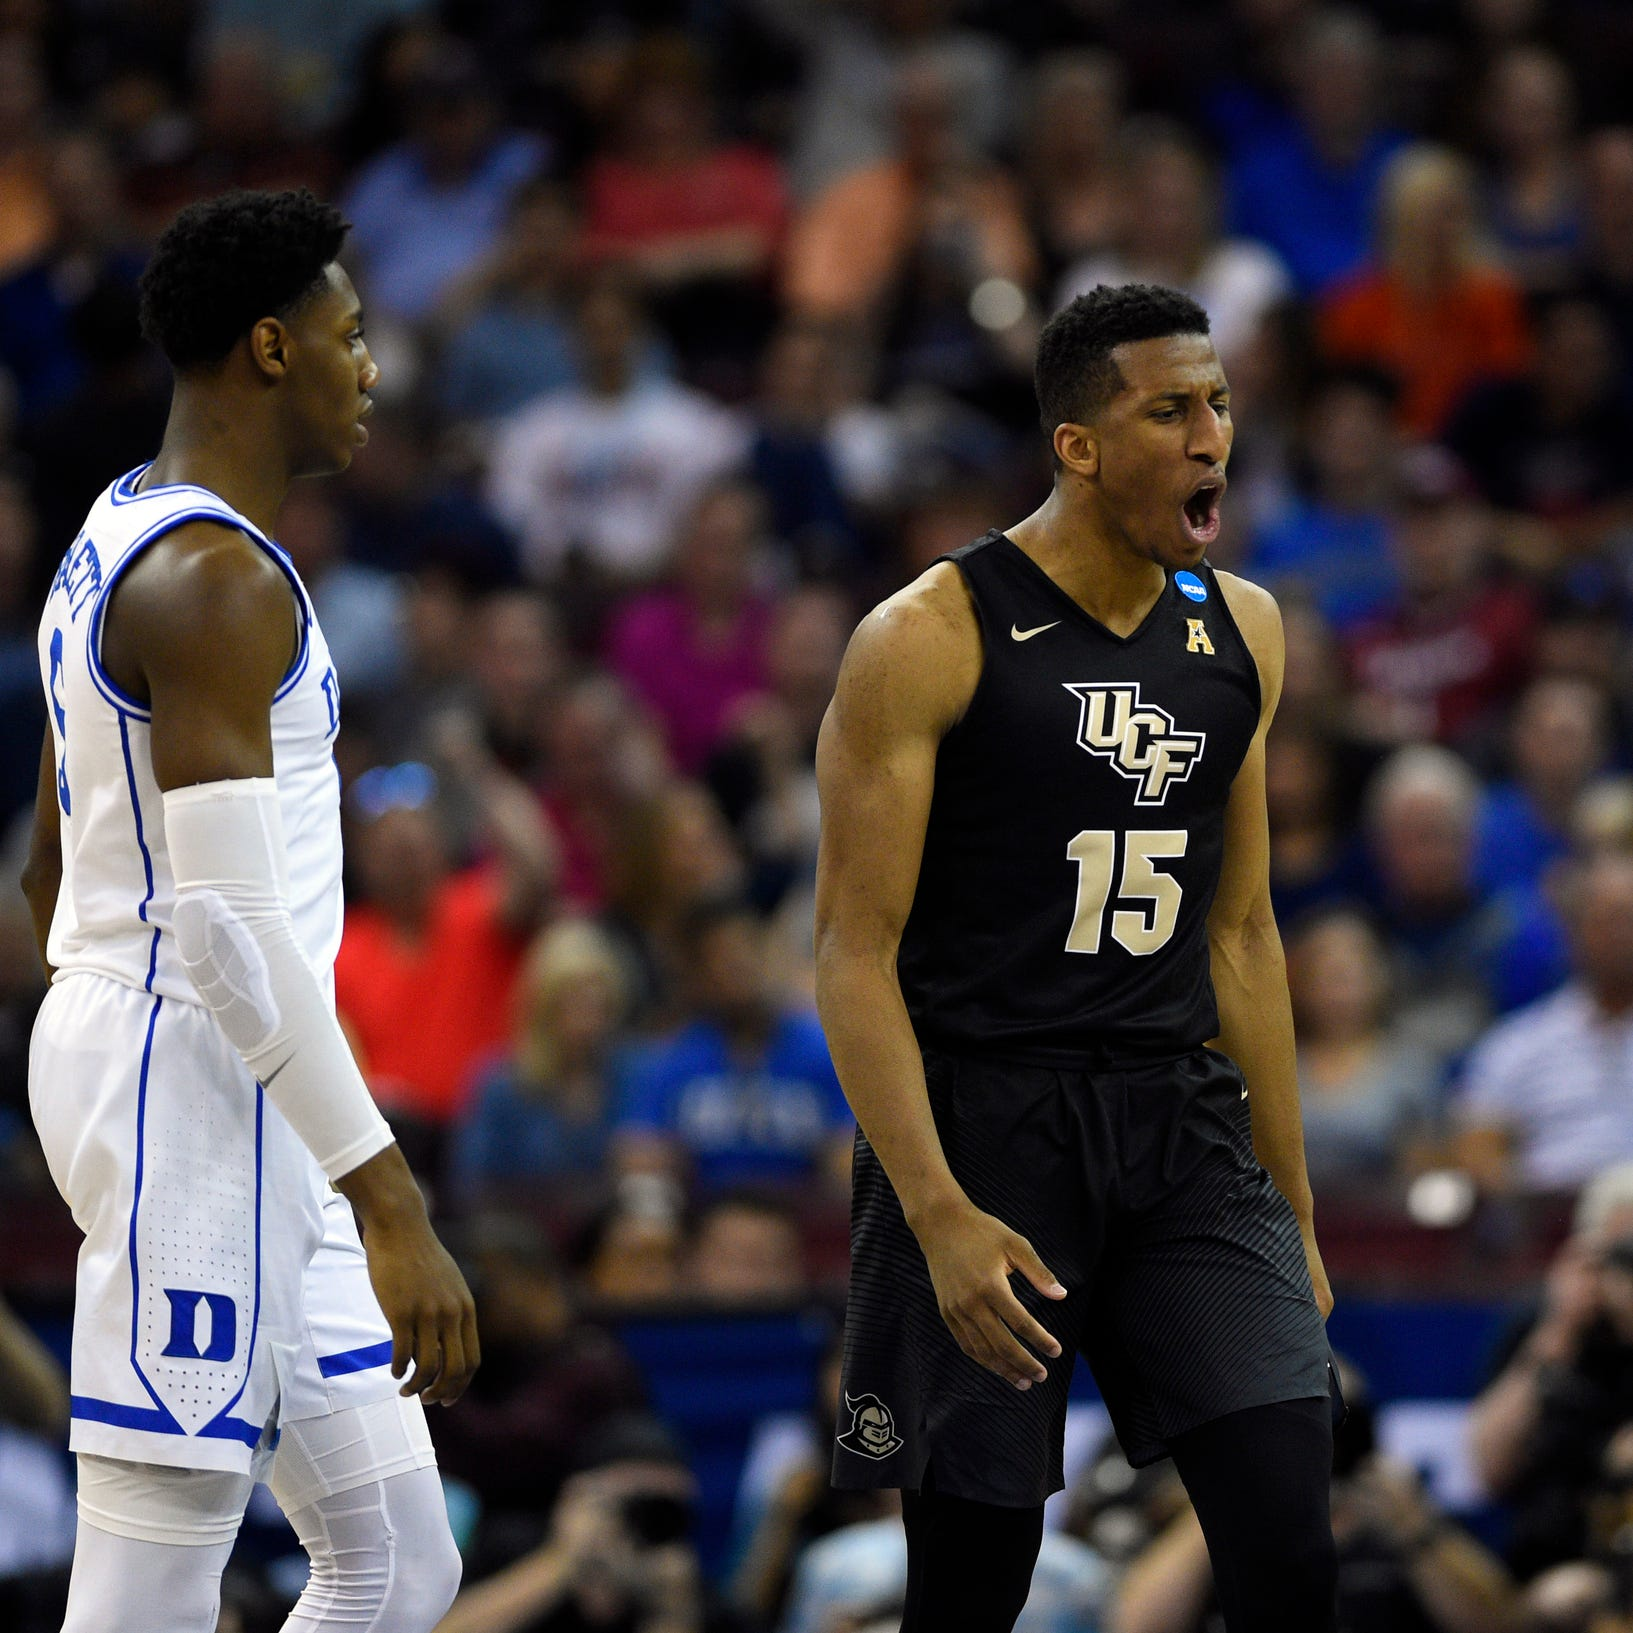 Duke somehow survives UCF upset bid and America mourns